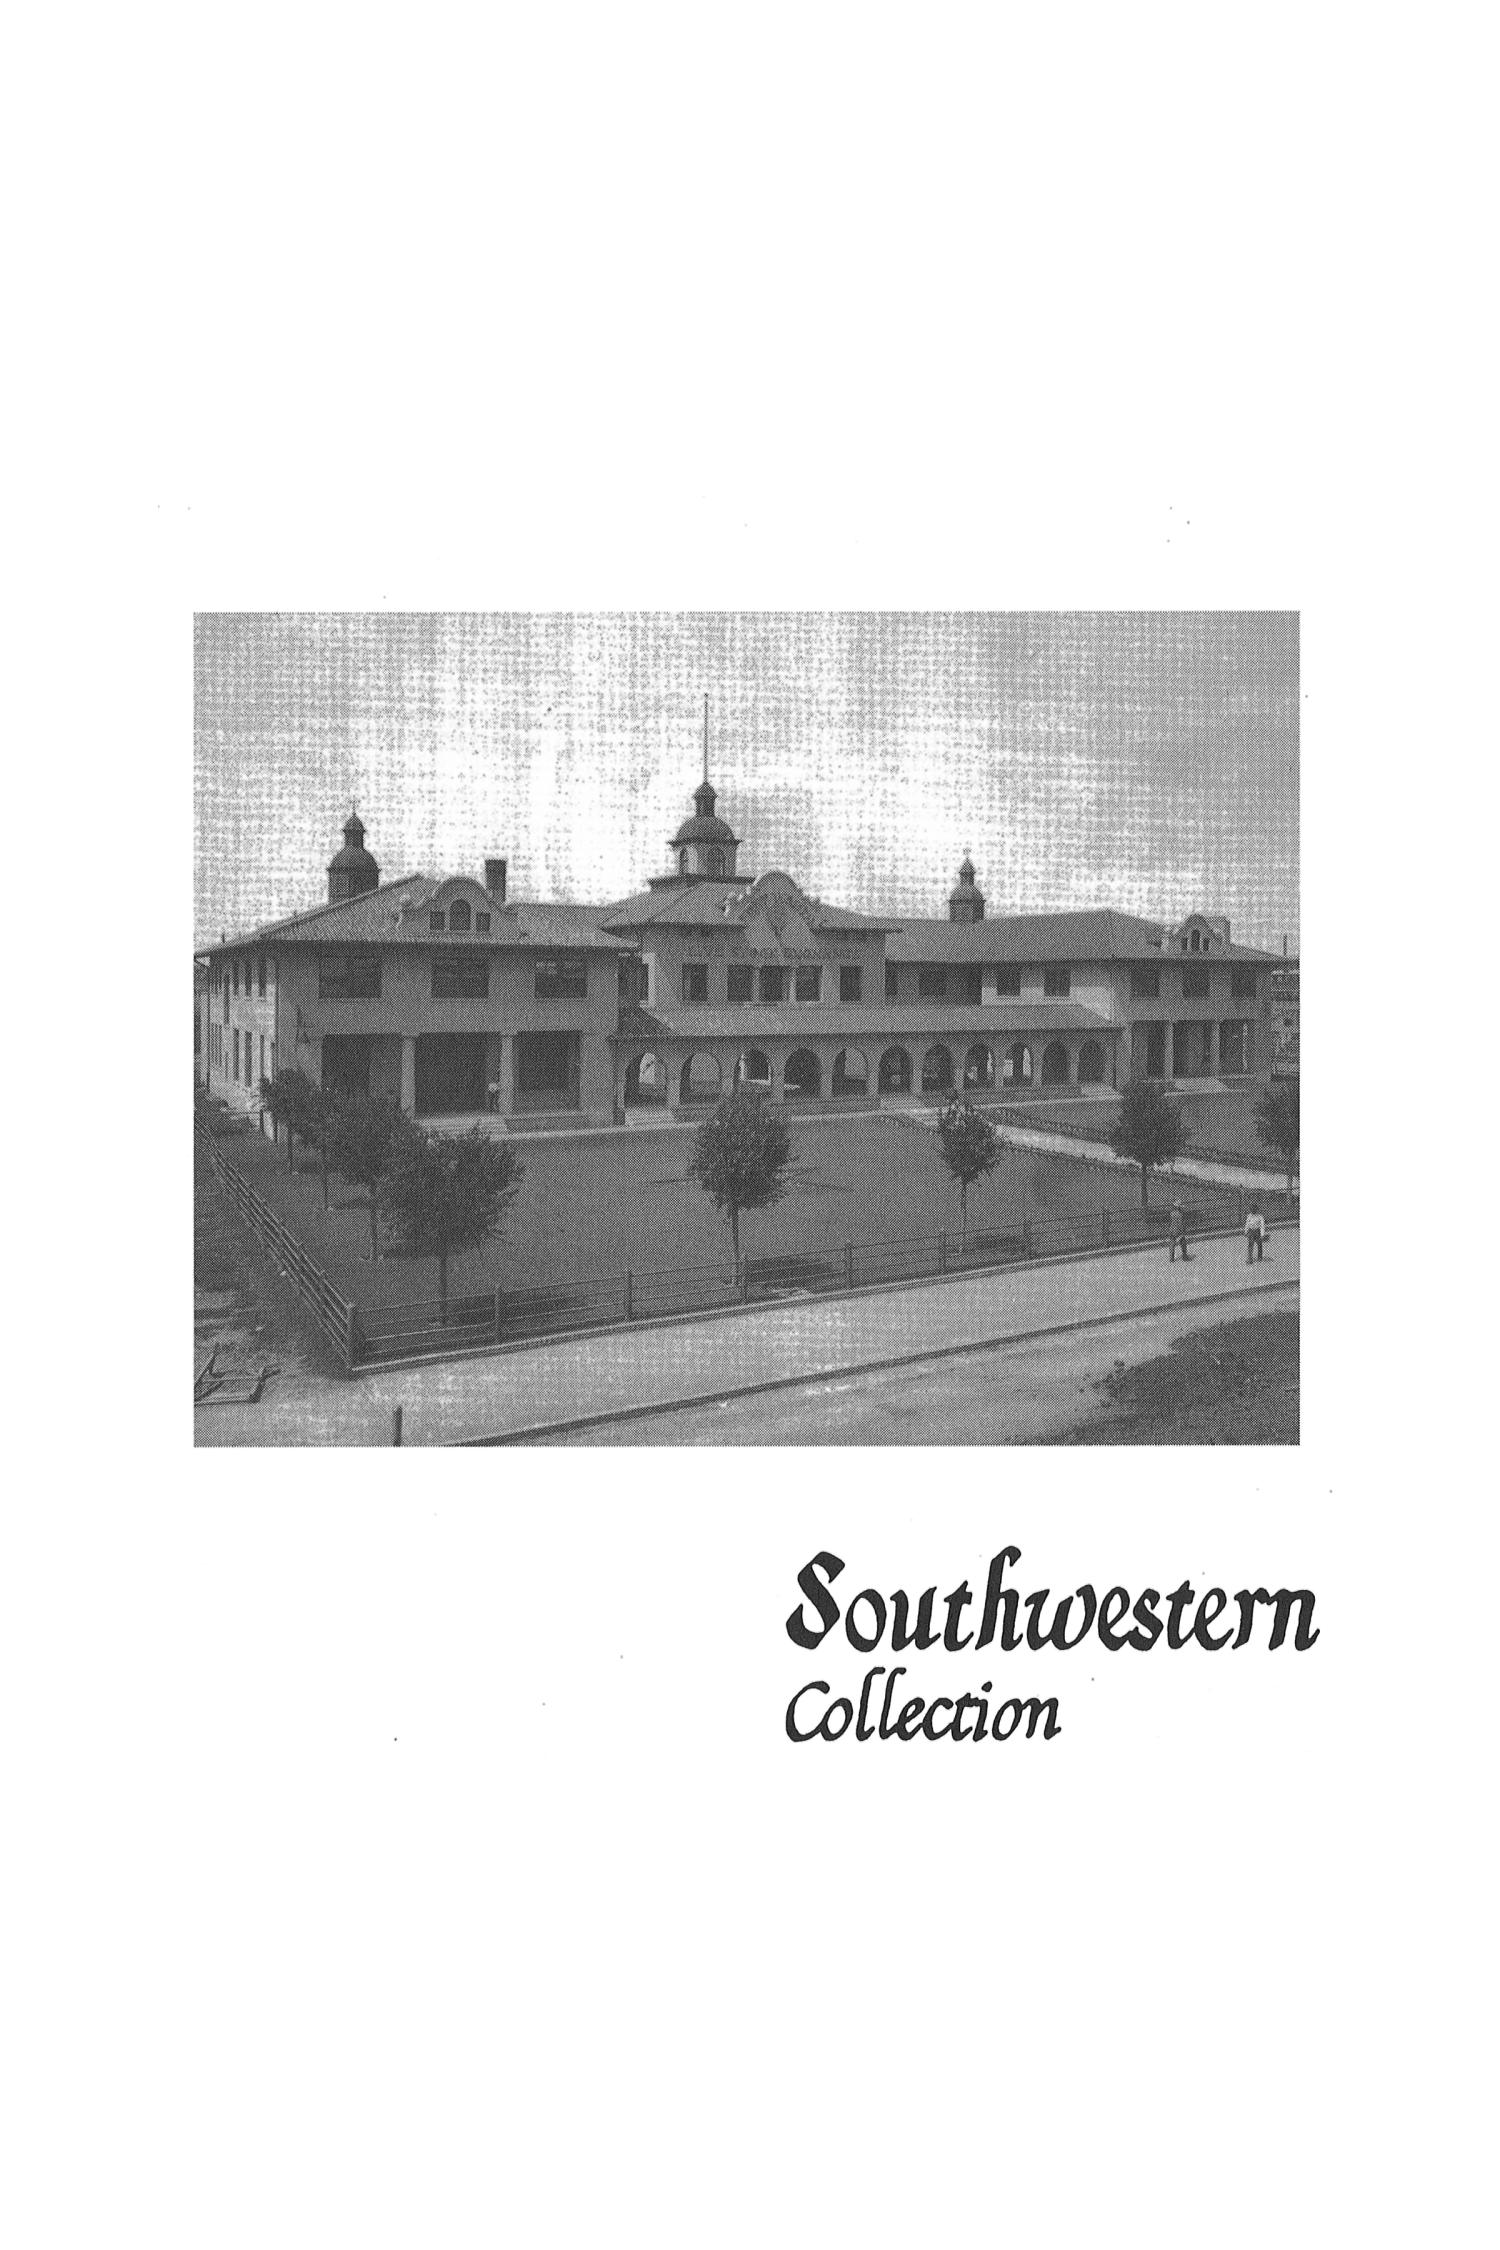 The Southwestern Historical Quarterly, Volume 107, July 2003 - April, 2004                                                                                                      459